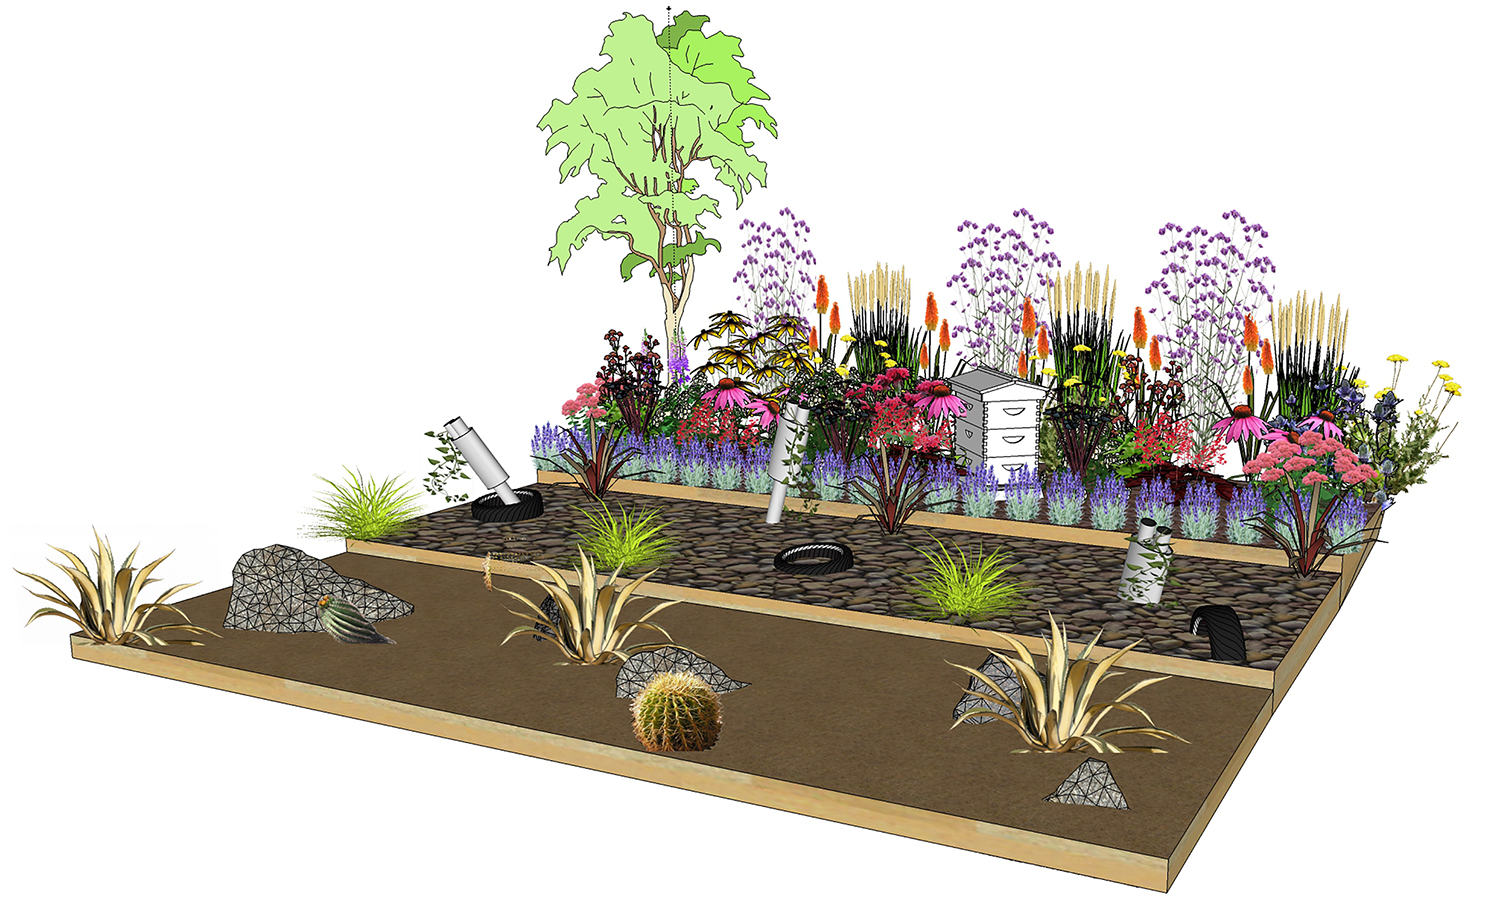 Shrewsbury flower show hornby garden designs garden for Garden border design